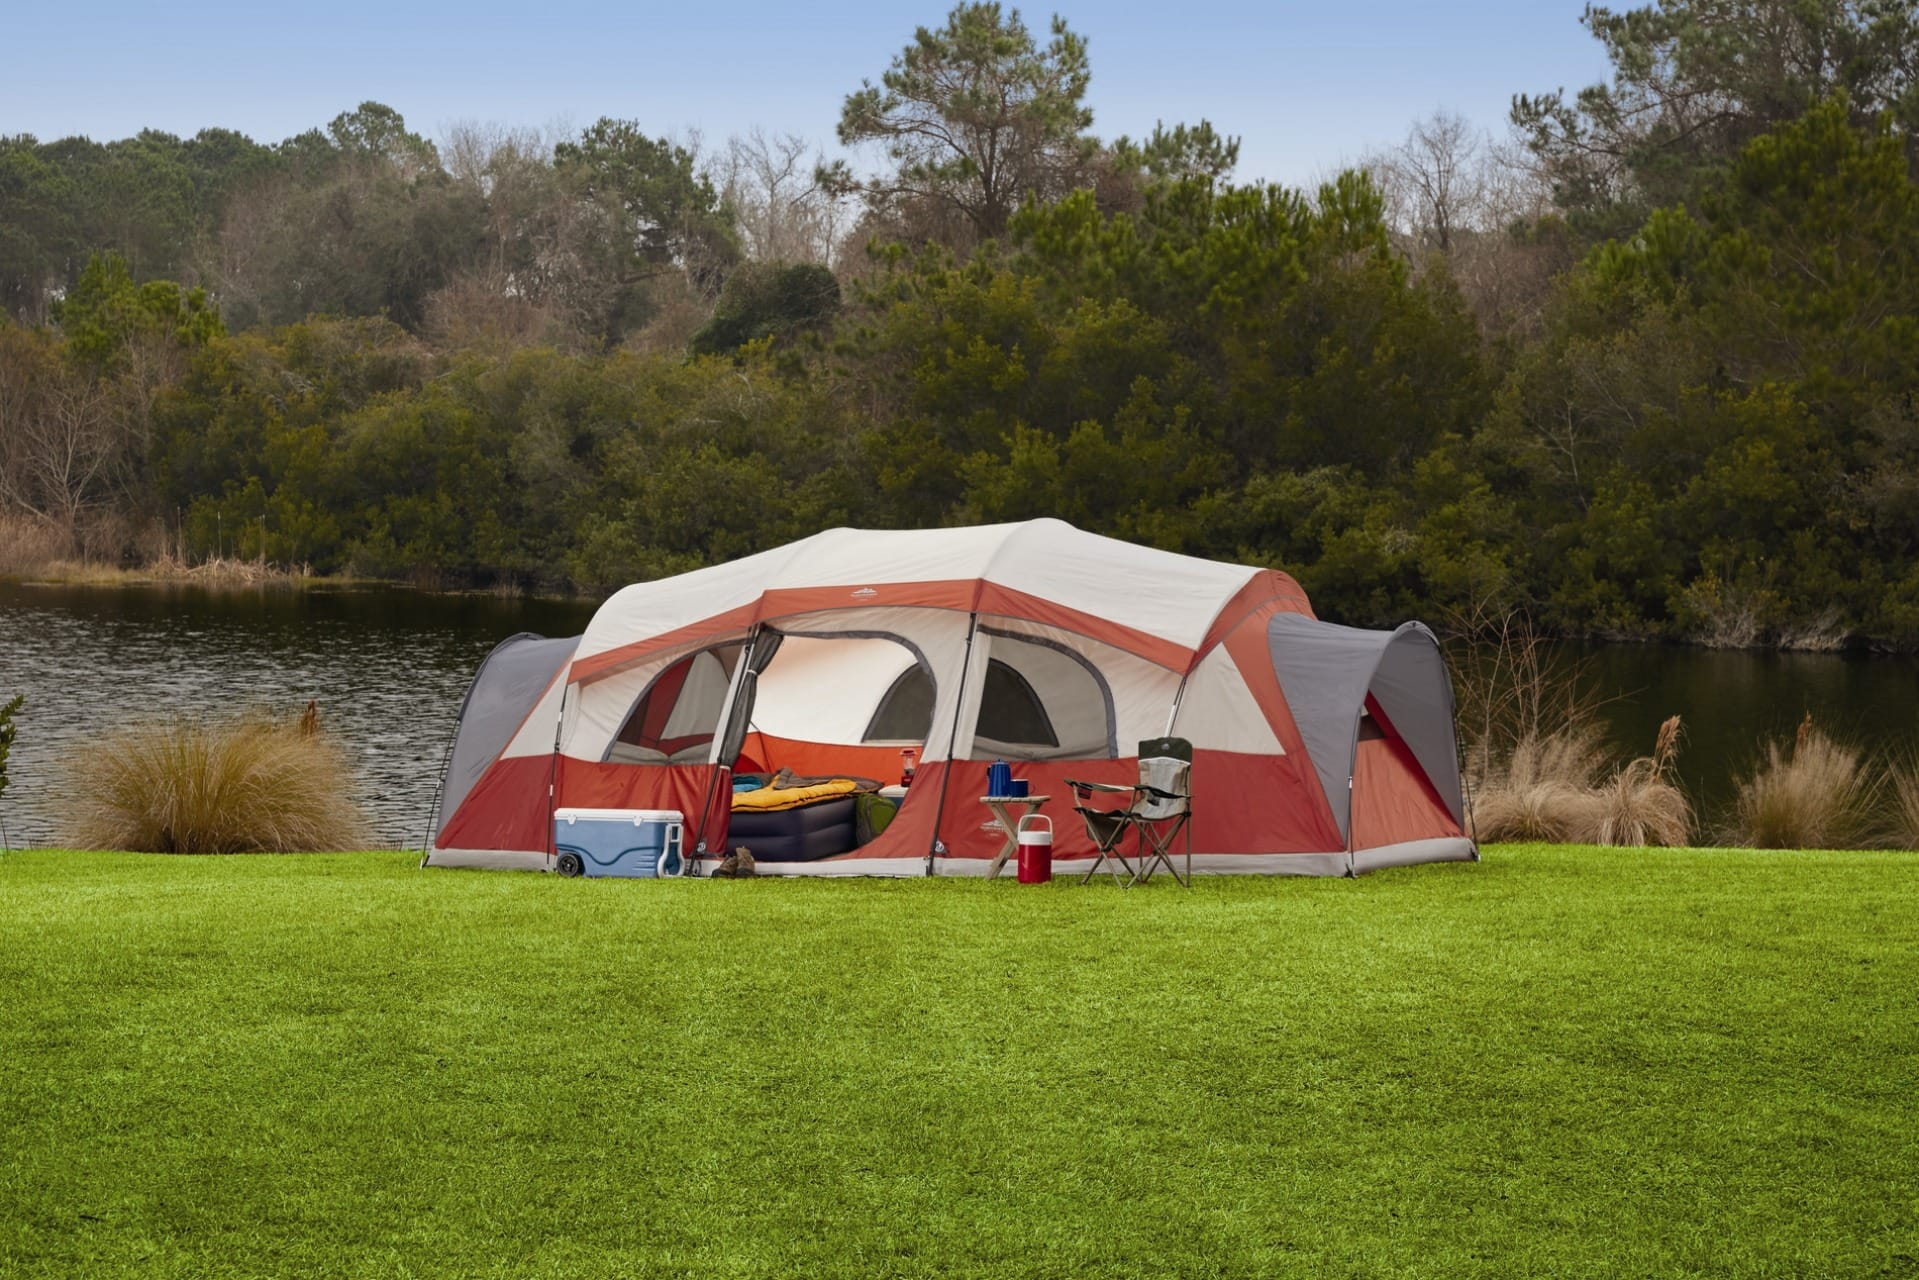 Northwest Territory The Homestead 3 room tent 21' x 14' for $99